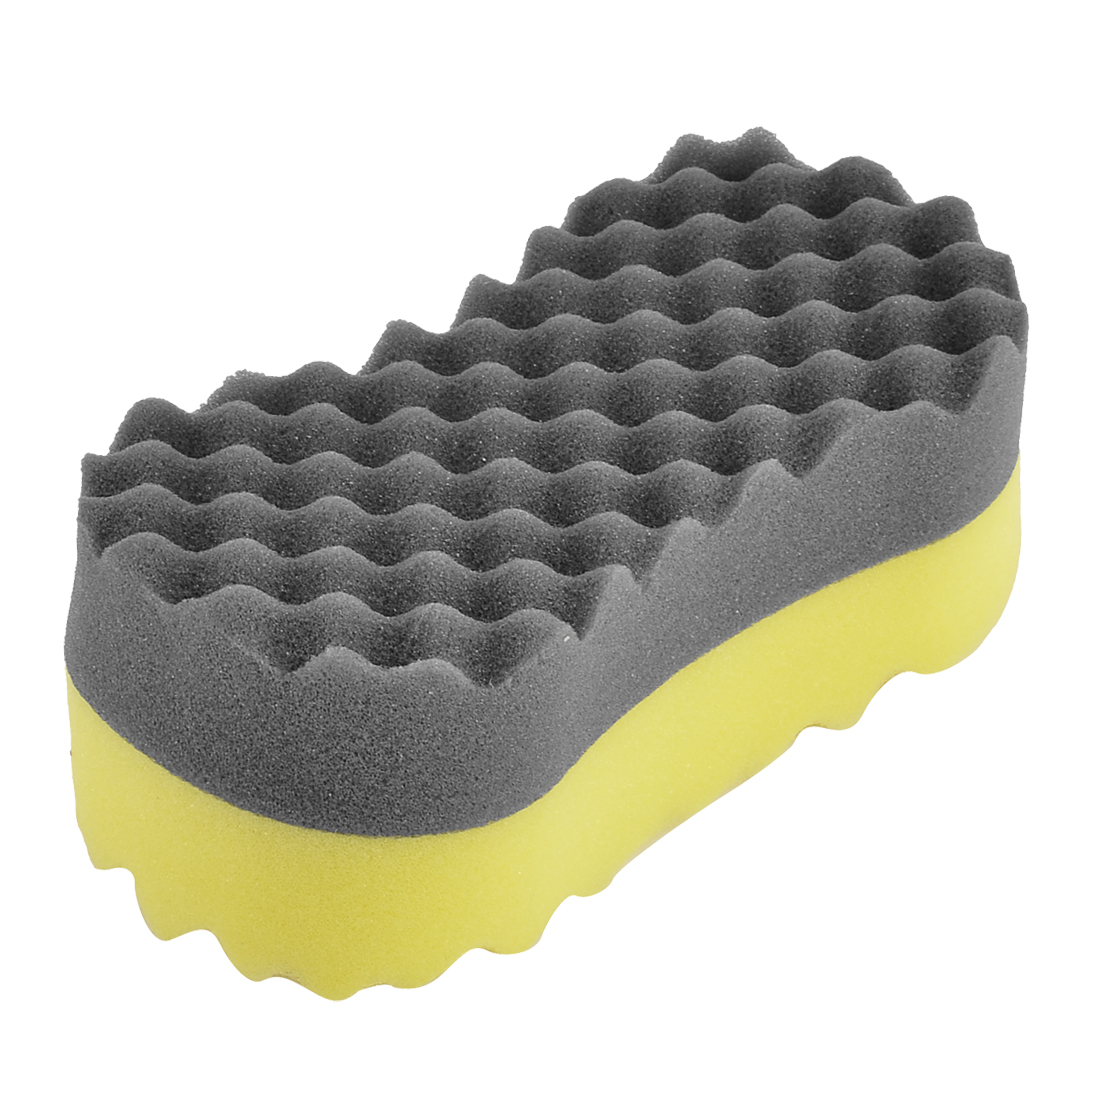 Auto Black Yellow Bone Shape Wax Buffing Polishing Sponge Pad Cleaner